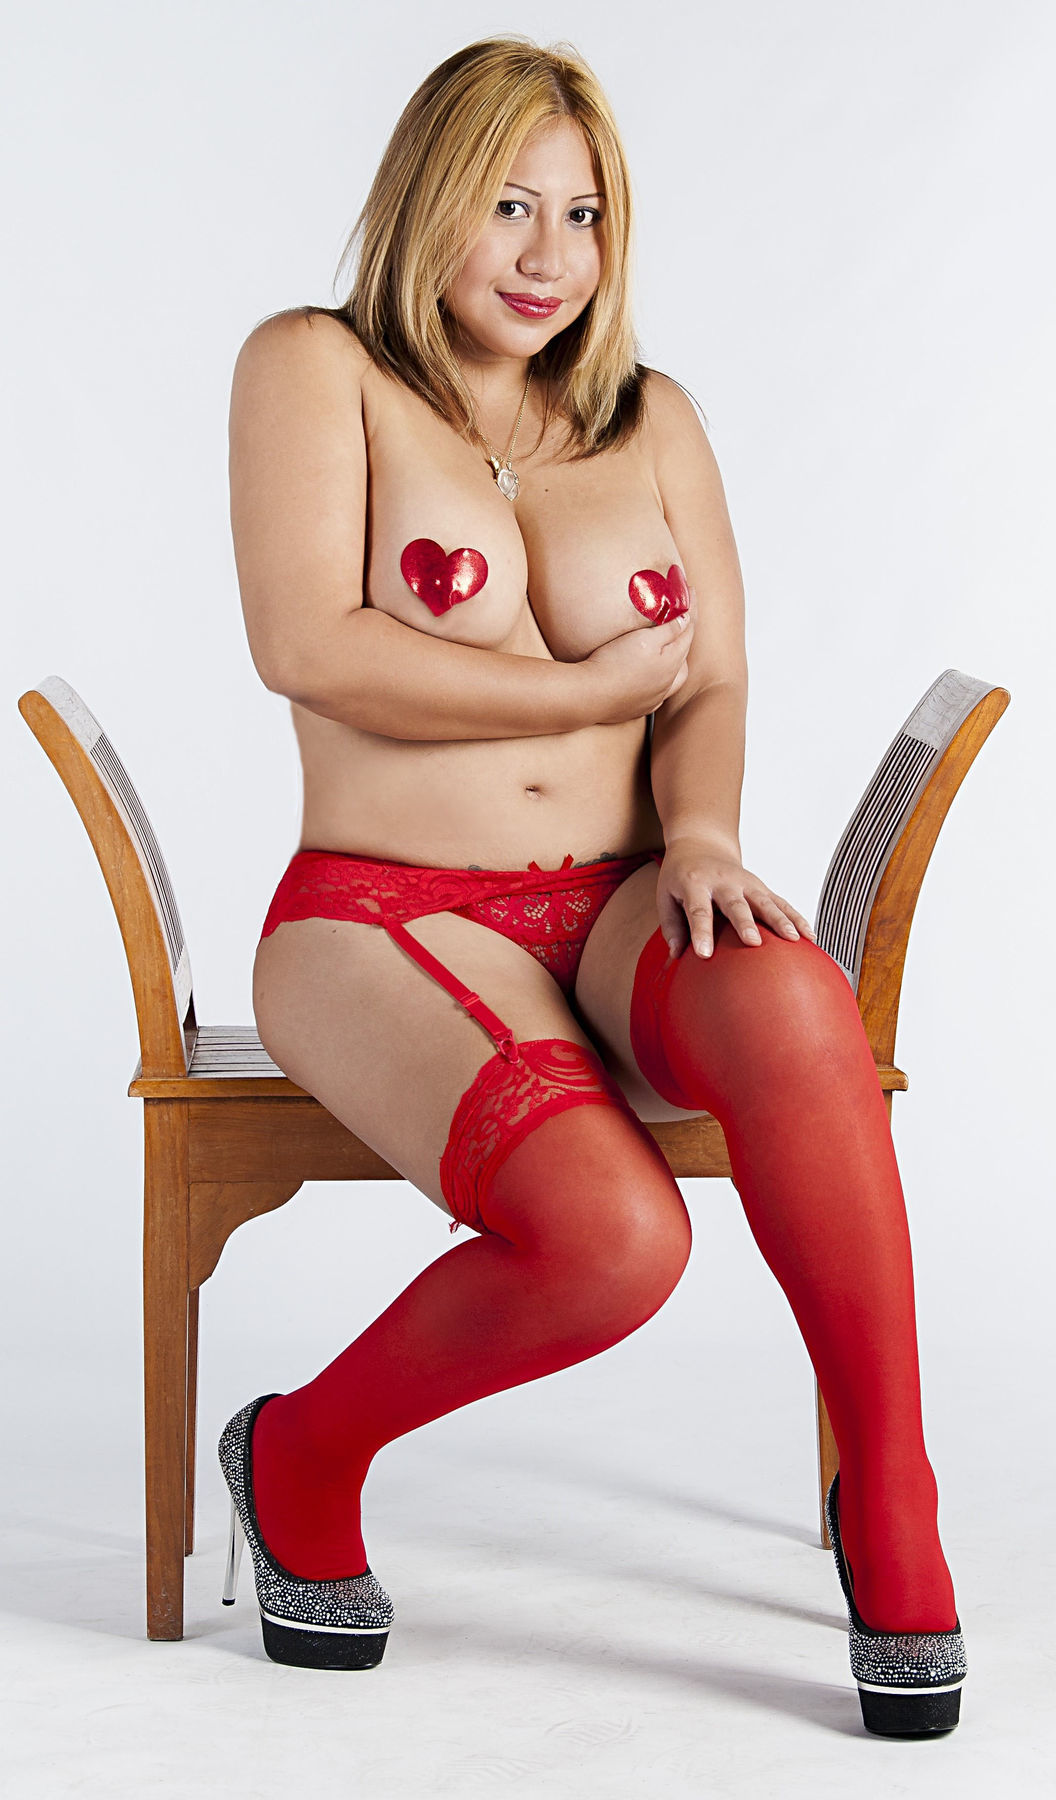 Mexican escorts services Orange County Shemale Escorts & TS Escorts in Orange County, CA